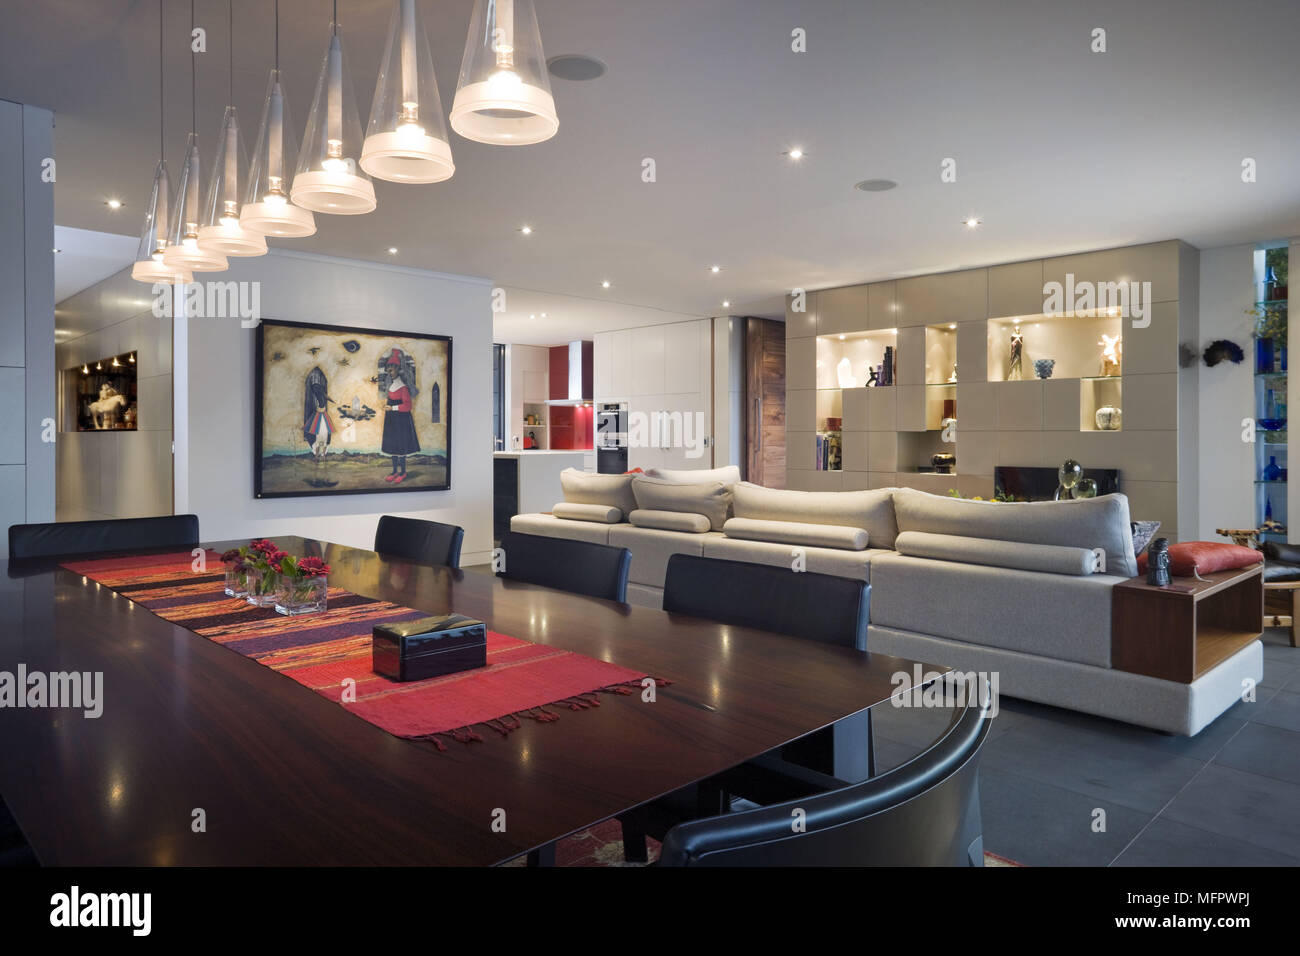 Ceiling Lights Suspended Above Dining Table In Modern Open Plan Room